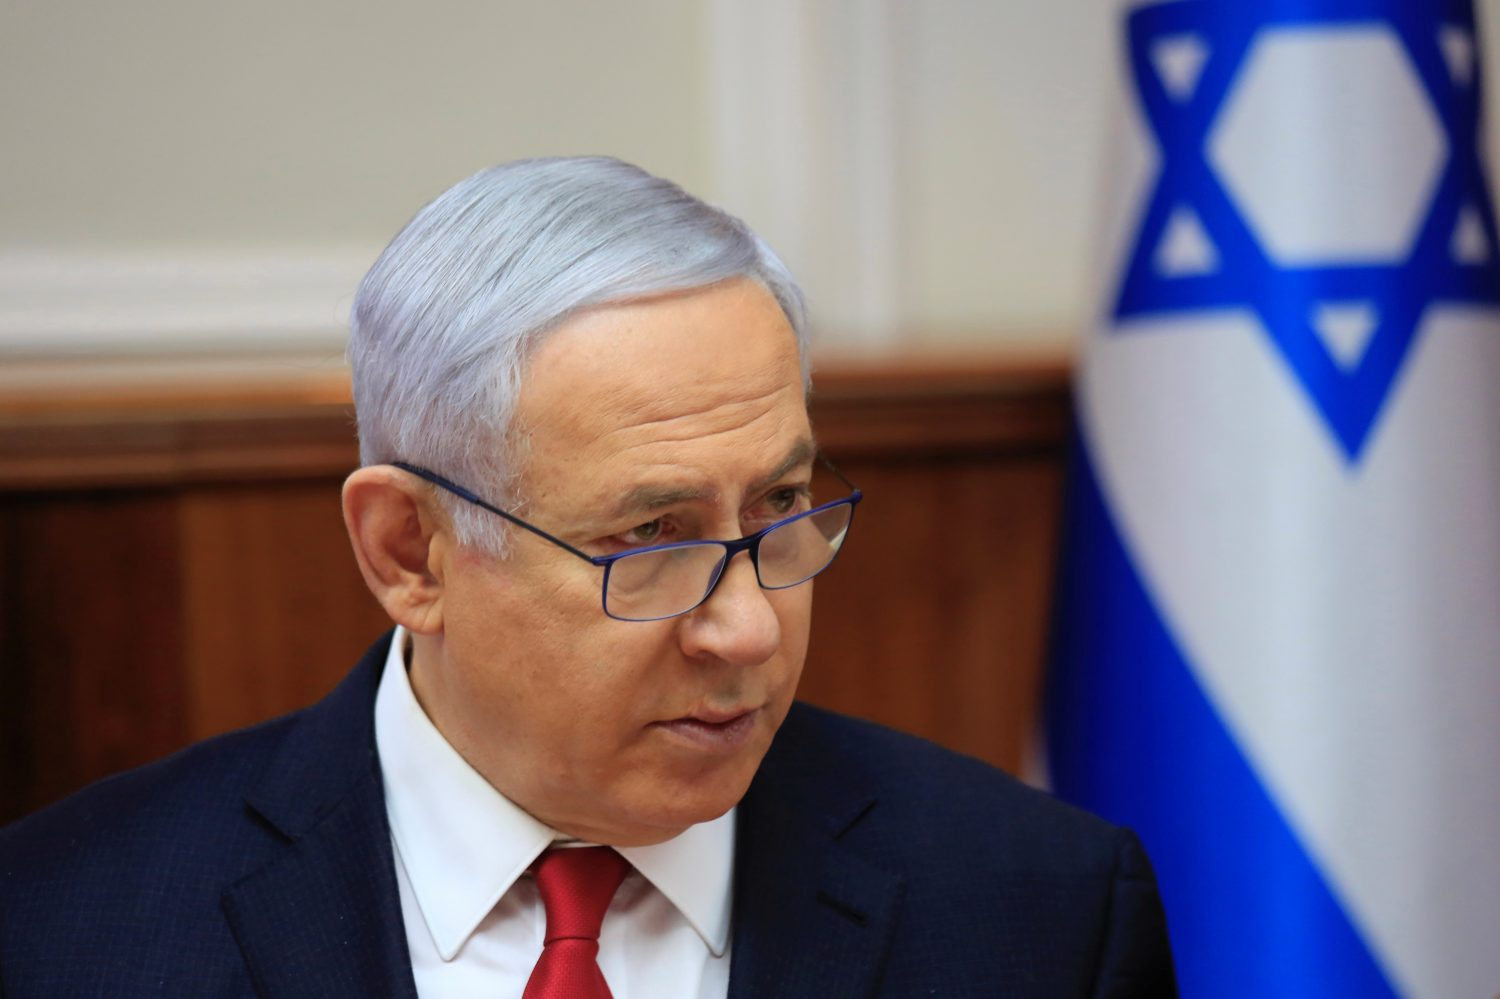 FILE PHOTO: Israeli Prime Minister Benjamin Netanyahu speaks during the weekly cabinet meeting at the Prime Minister's office in Jerusalem May 19, 2019. Ariel Schalit/Pool via REUTERS